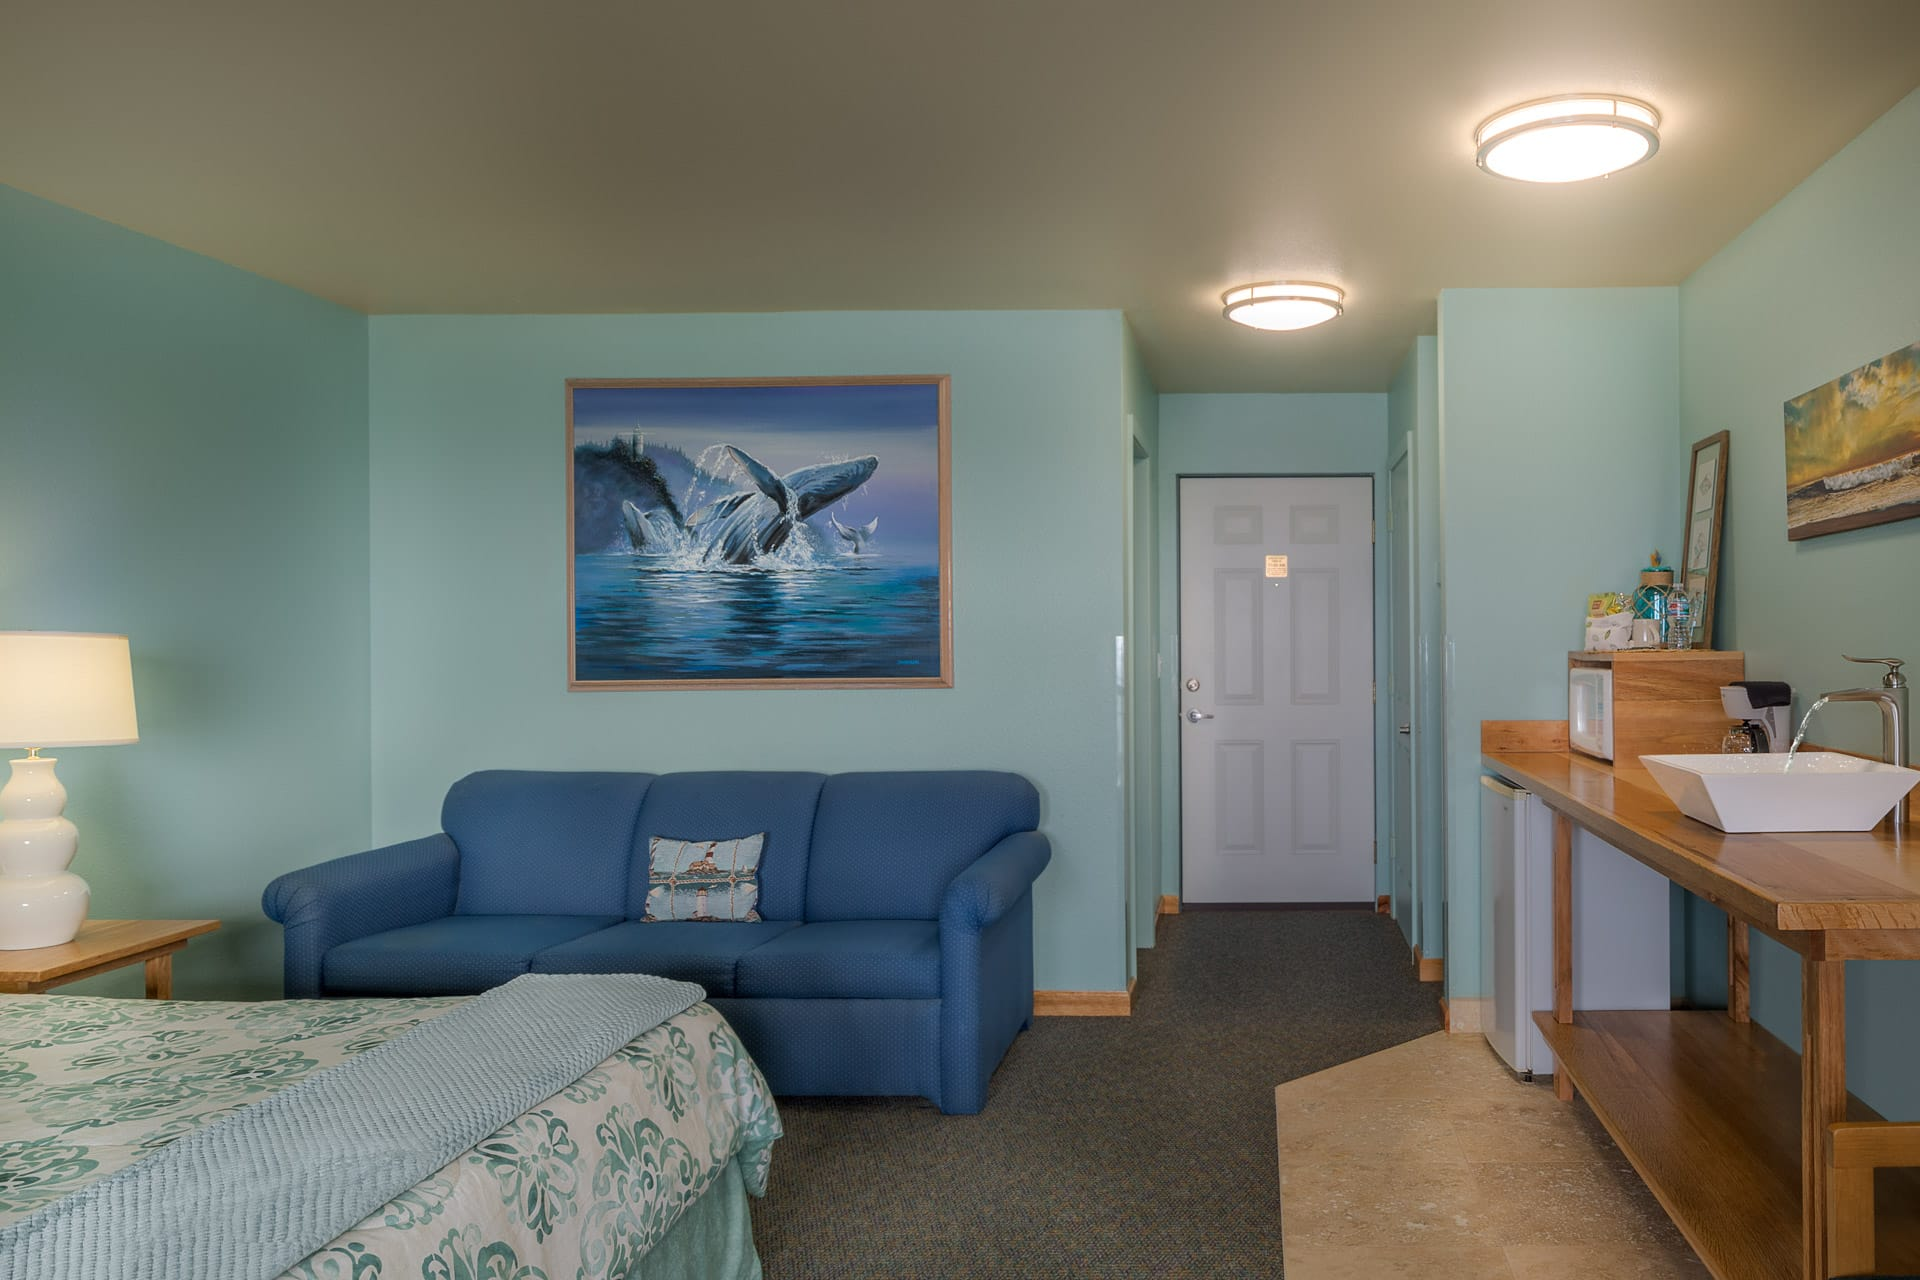 Spacious Deluxe Guestroom hotel room at the oceanfront Inn of the Lost Coast with King size bed, kitchenette, mini refrigerator, microwave, sofa couch, and original artwork.